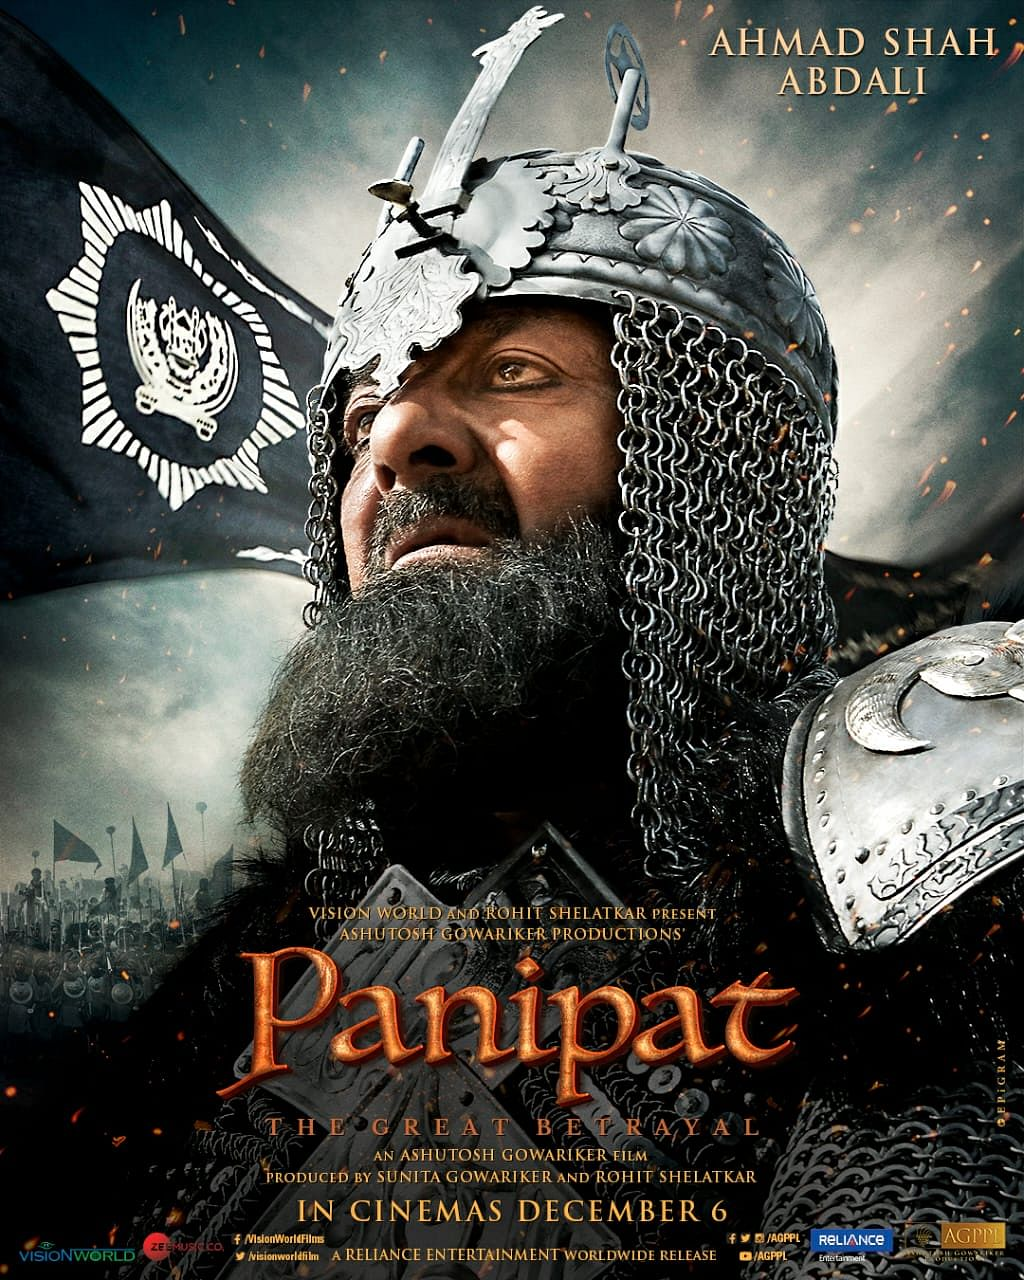 Sanjay Dutt in a poster for <i>Panipat.</i>